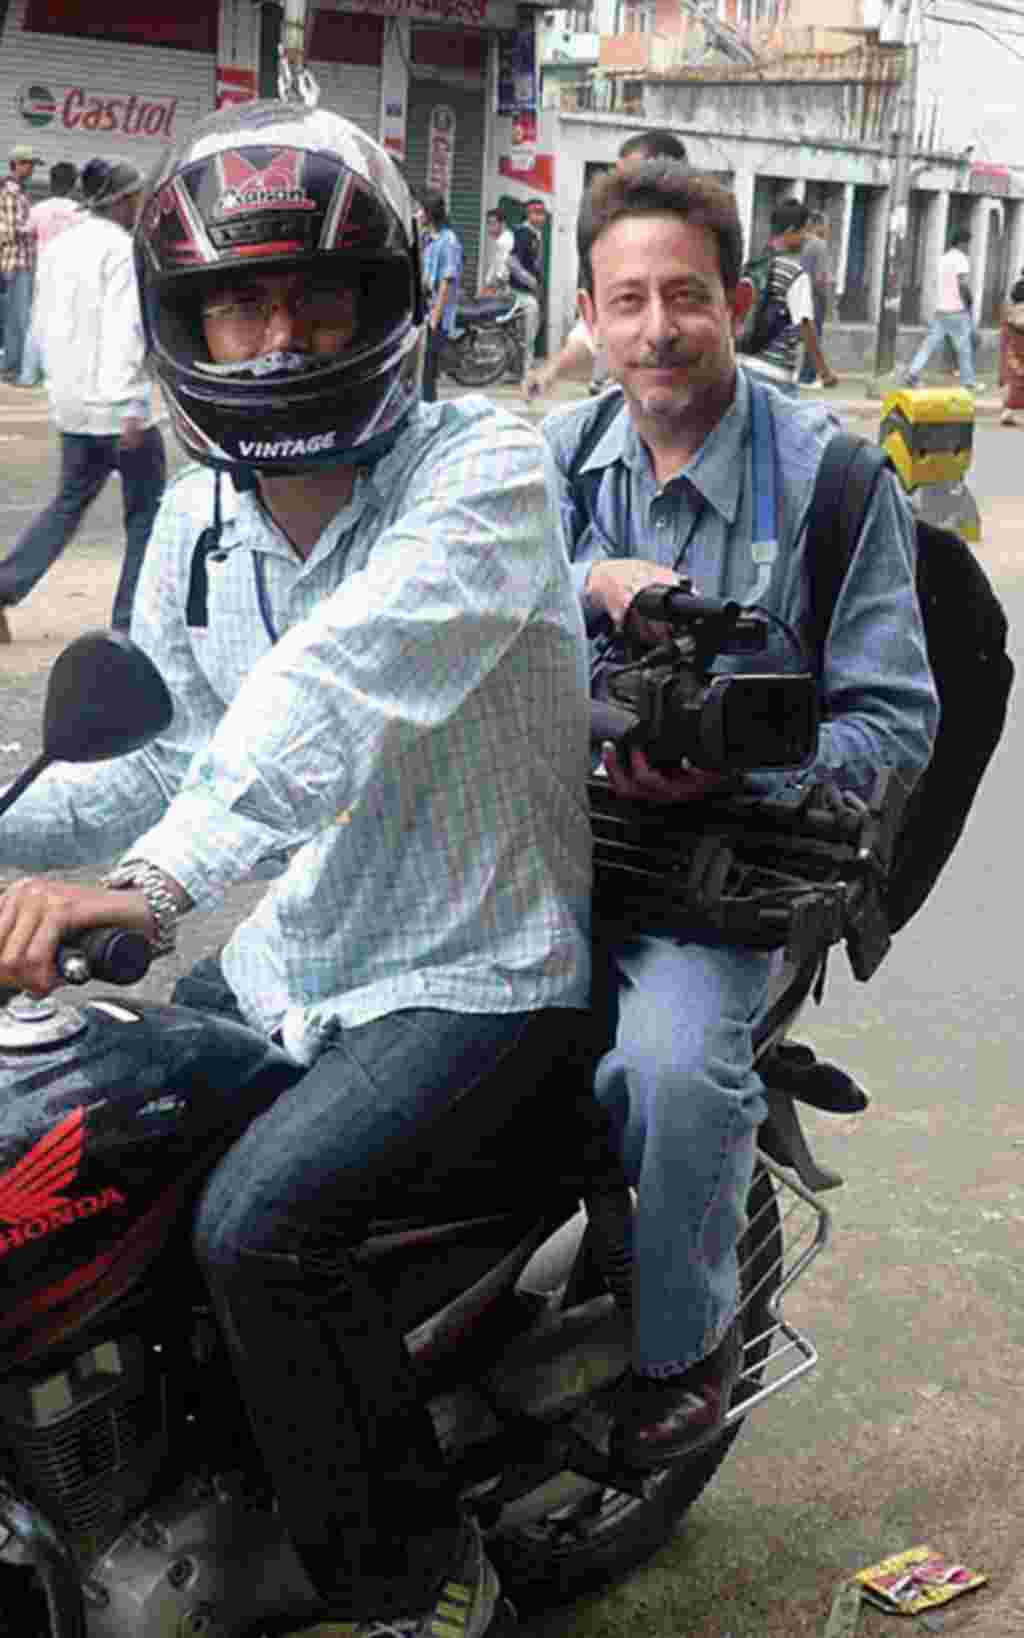 Reporter Steve Herman keeps his camera close while catching a ride.